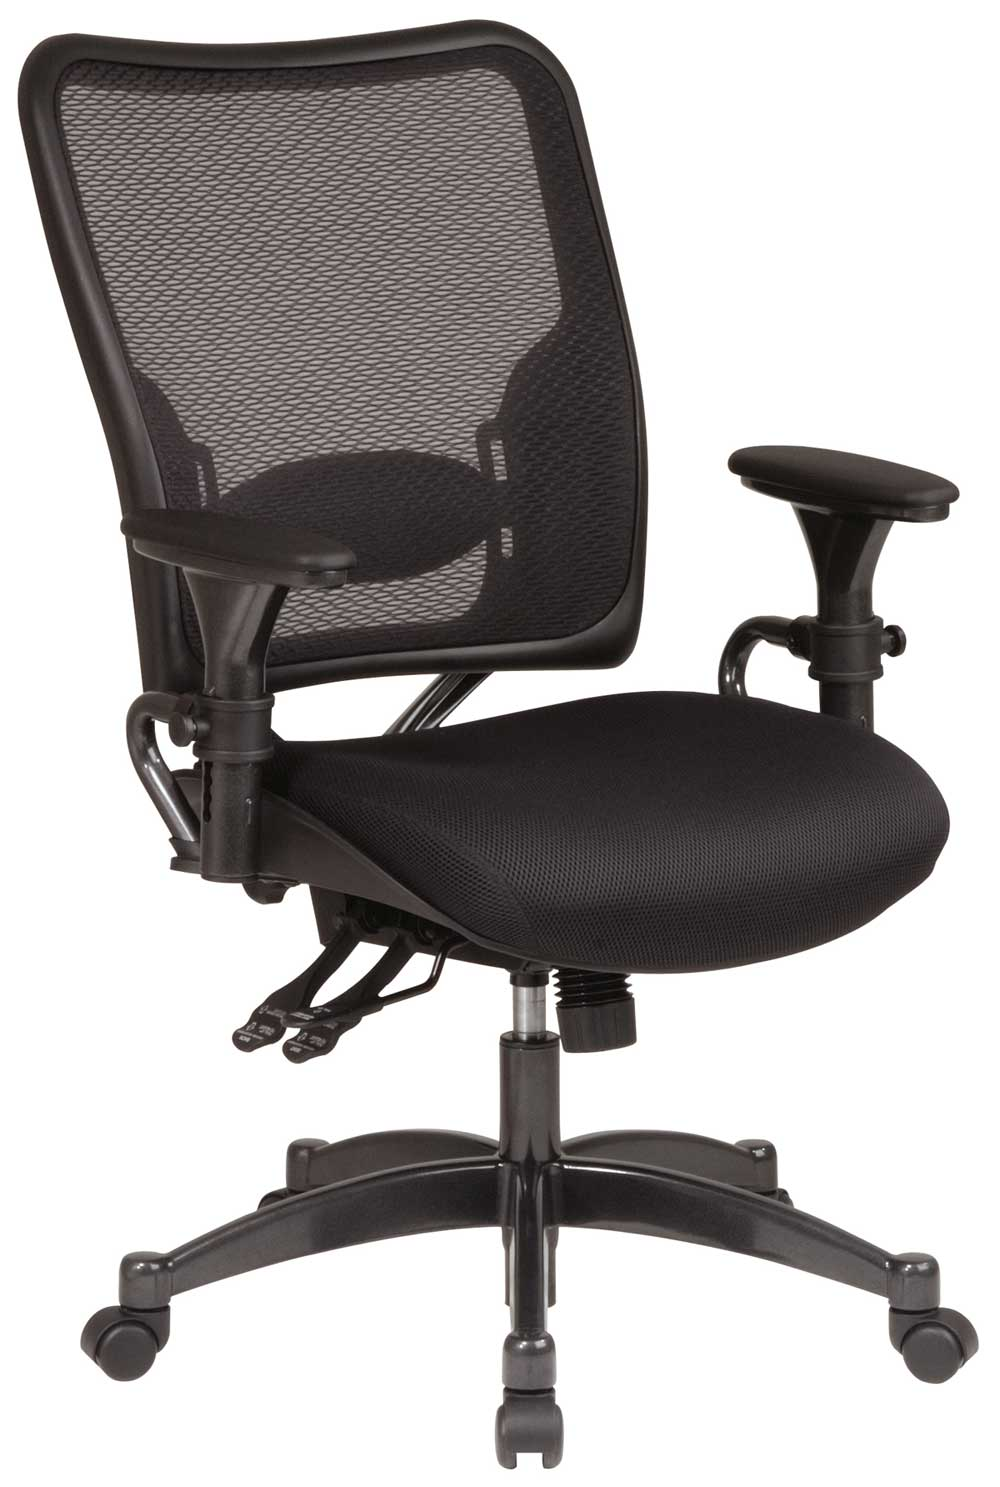 Dual Function Professional Ergonomic Mesh Desk Chair